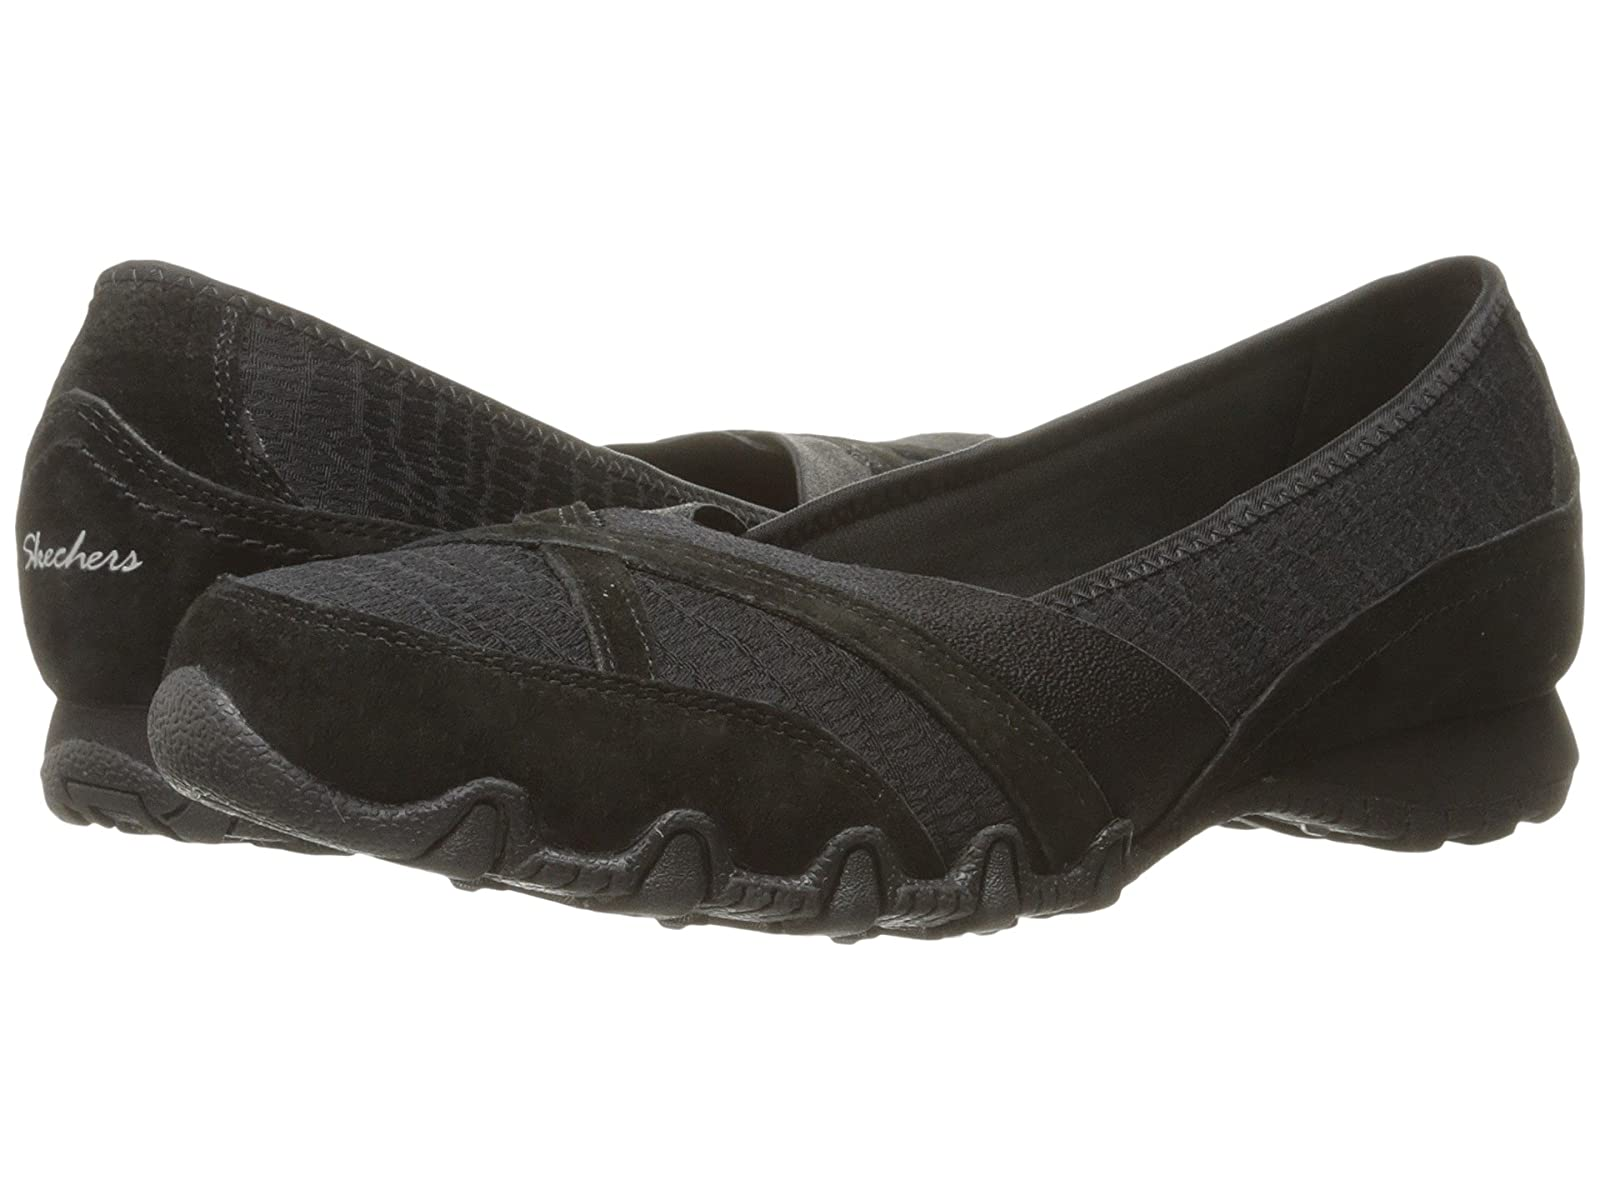 SKECHERS Modern Comfort Bikers SatineCheap and distinctive eye-catching shoes